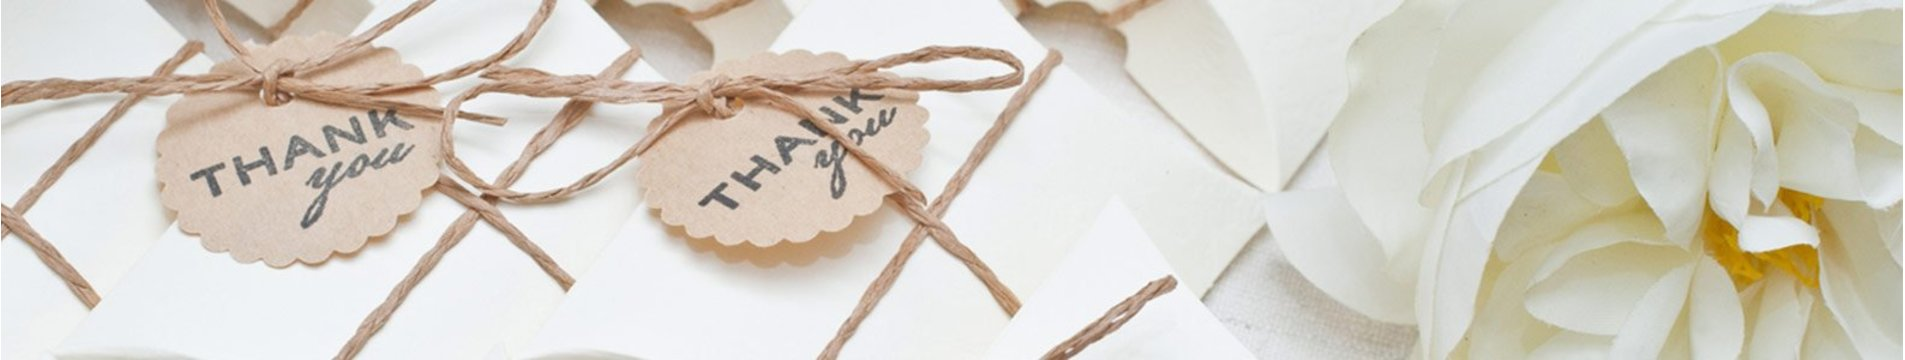 10-unique-wedding-favours-for-your-perfect-day-thumb.jpg